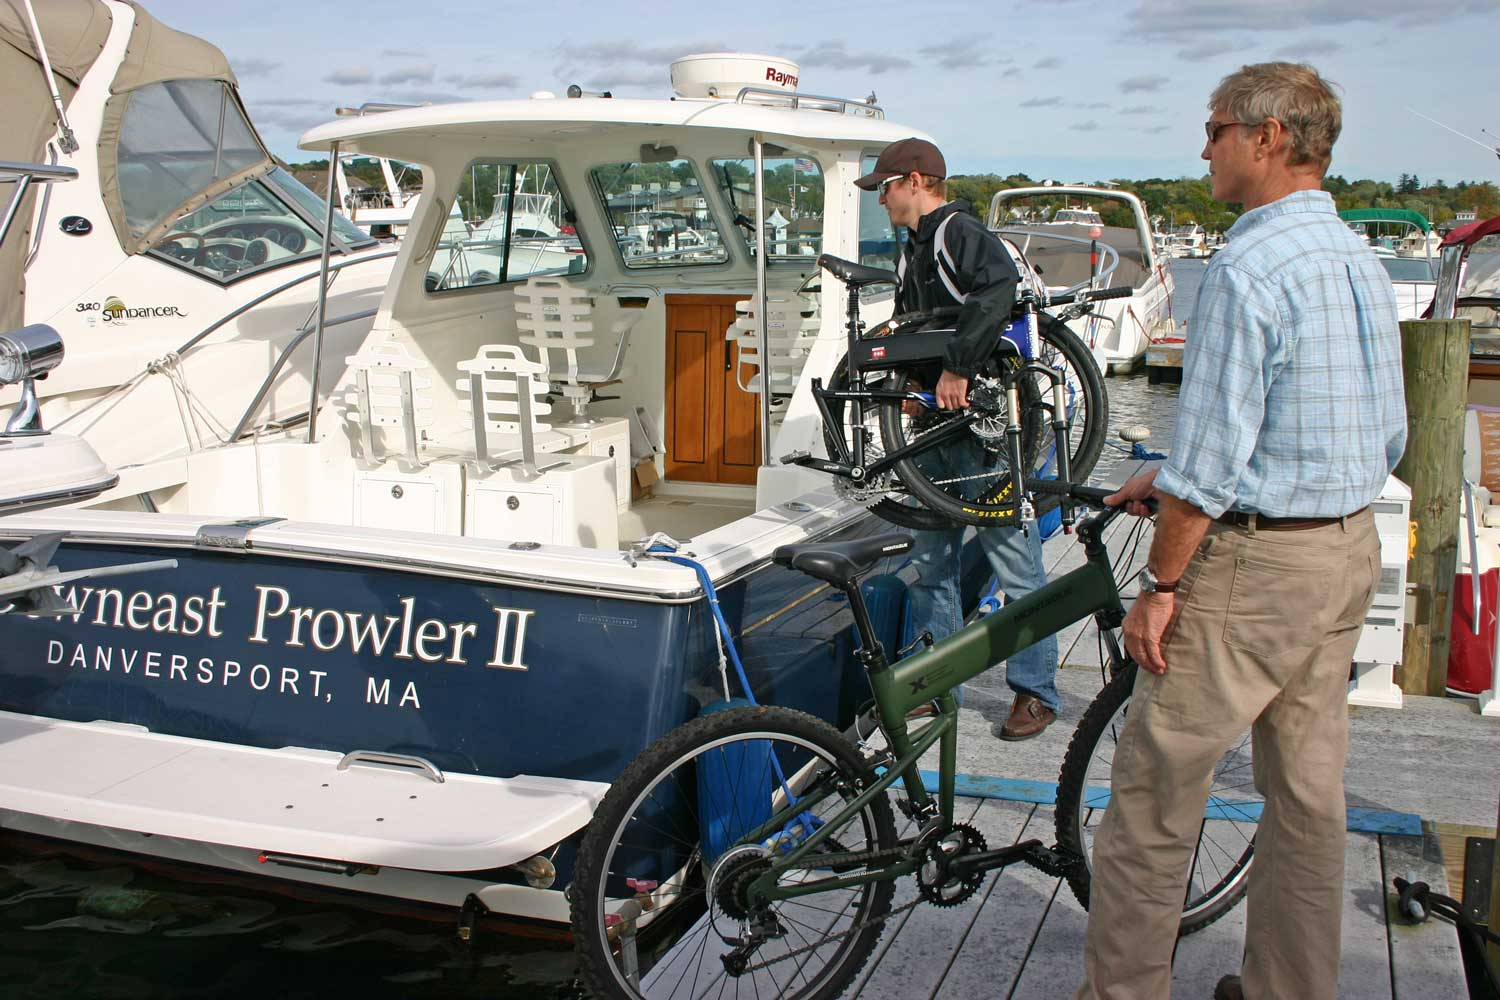 Two Folding Bikes in Boatyard